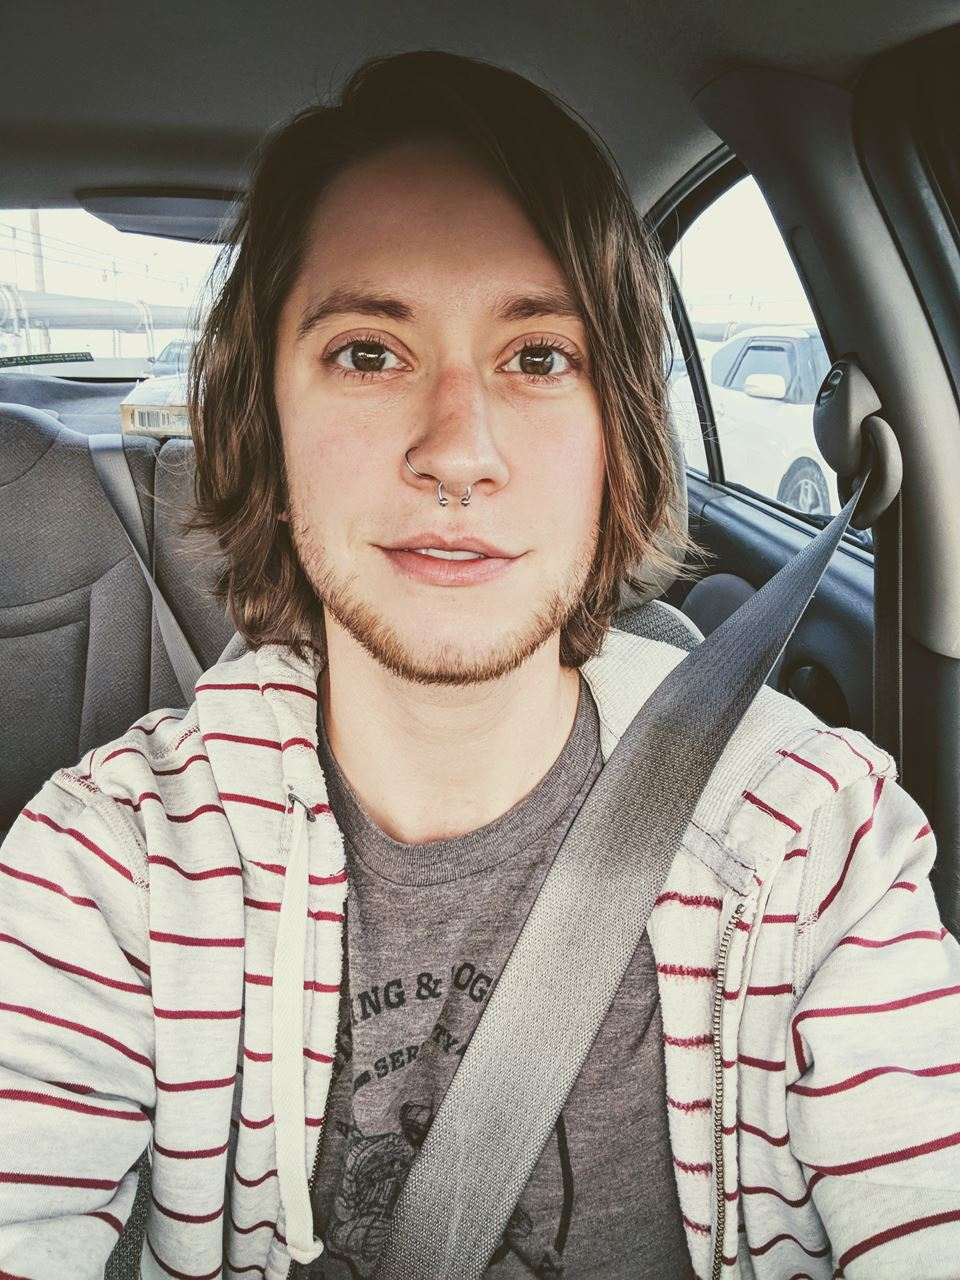 [image description Selfie of Reid. They are sitting in a car with a seatbelt on. They are white, have medium length brown hair, hazel eyes, and a short beardchin strap. They have a hoop in their right nostril and a horseshoe ring in their septum. They are wearing a brown shirt under an unzipped hoodie that is grey with narrow maroon stripes. They are staring at the camera and their mouth is open in a slight smile. It is daytime and another car is visible in the background.]